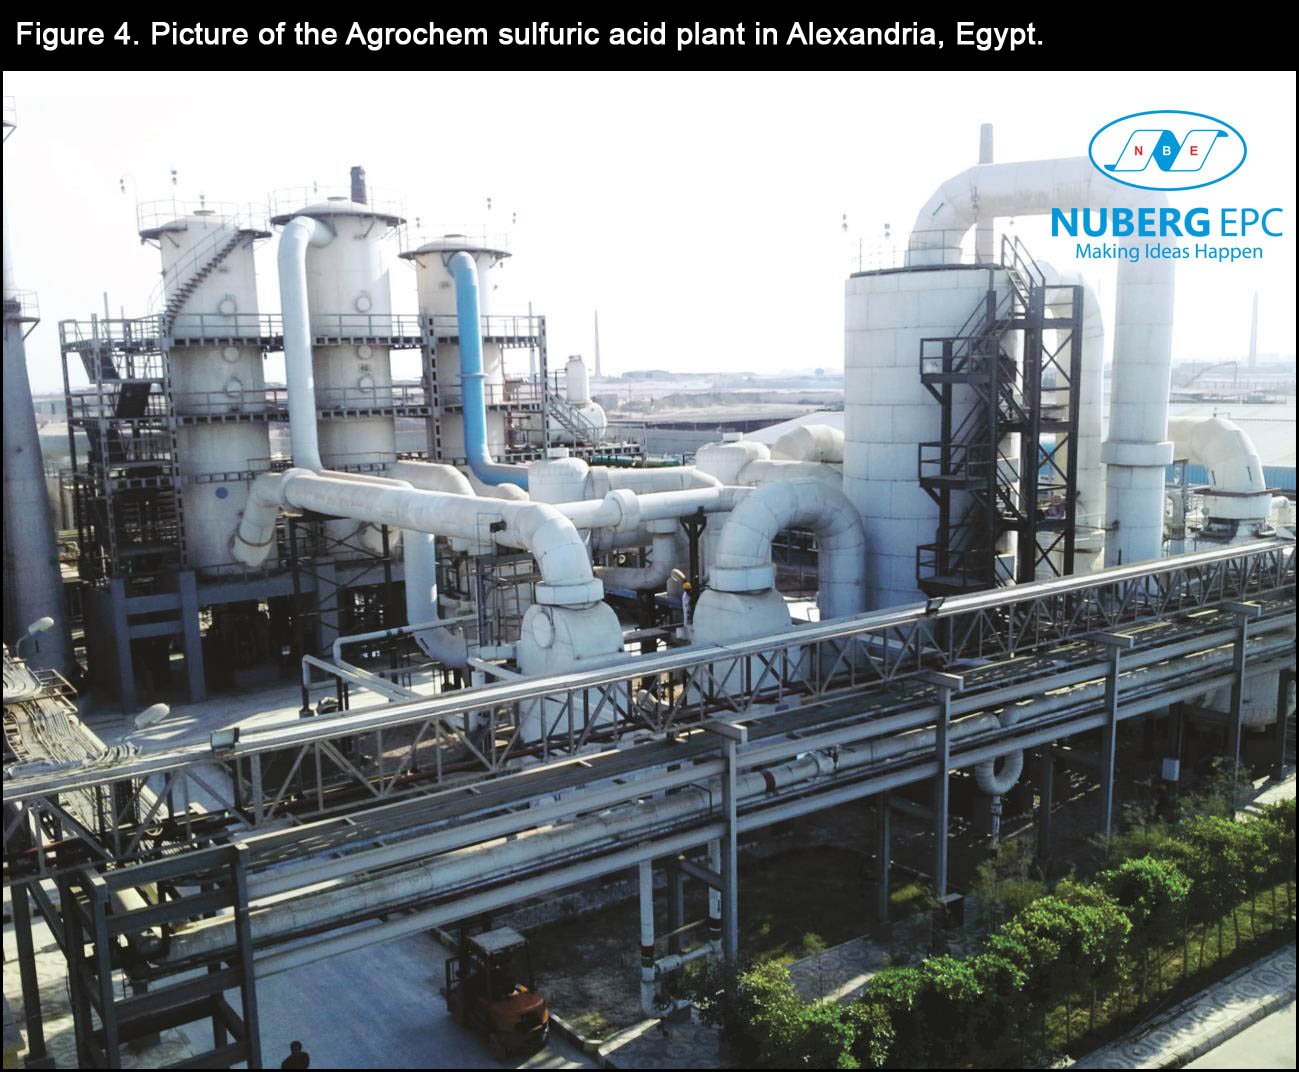 Agrochem sulfuric acid plant in Alexandria, Egypt